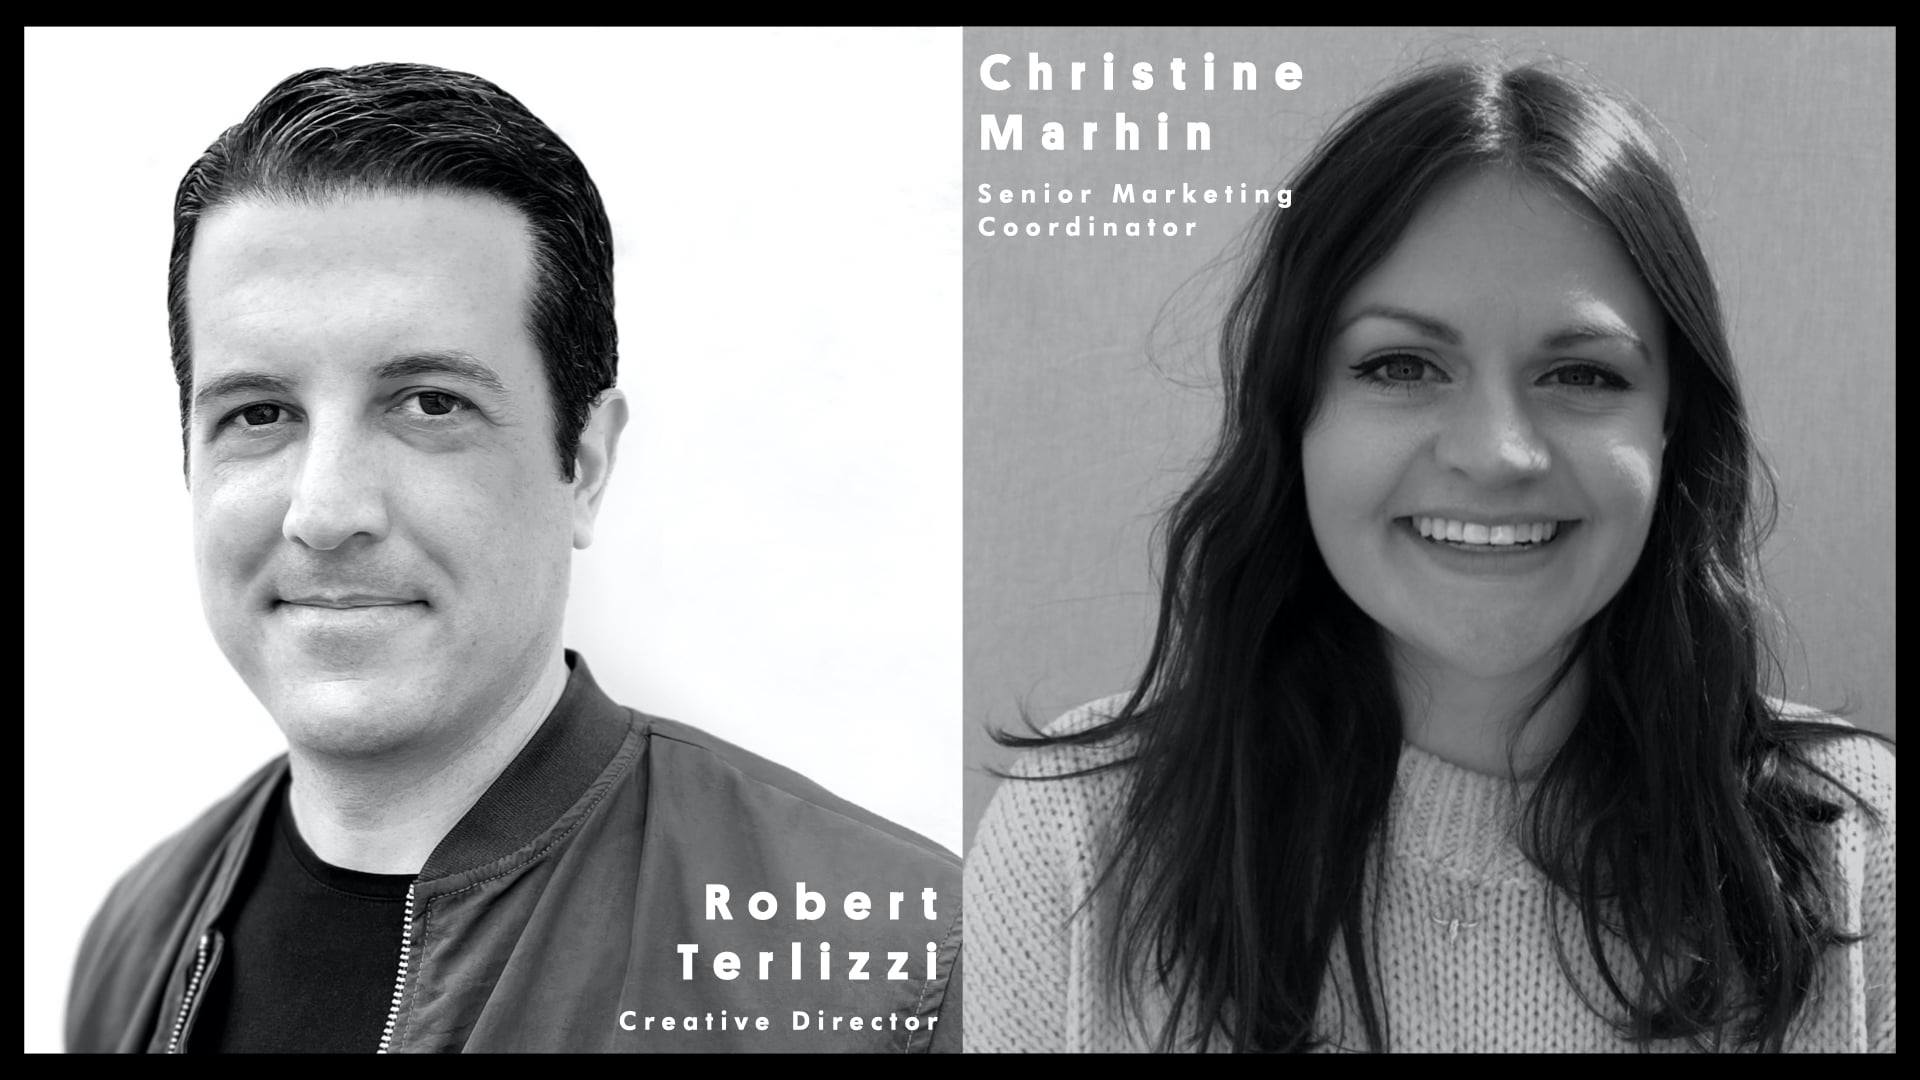 "May be a black-and-white image of 2 people and text that says 'Christine Marhin Senior S""Maeng Marketing Coordinator Robert Terlizzi Creative Director'"